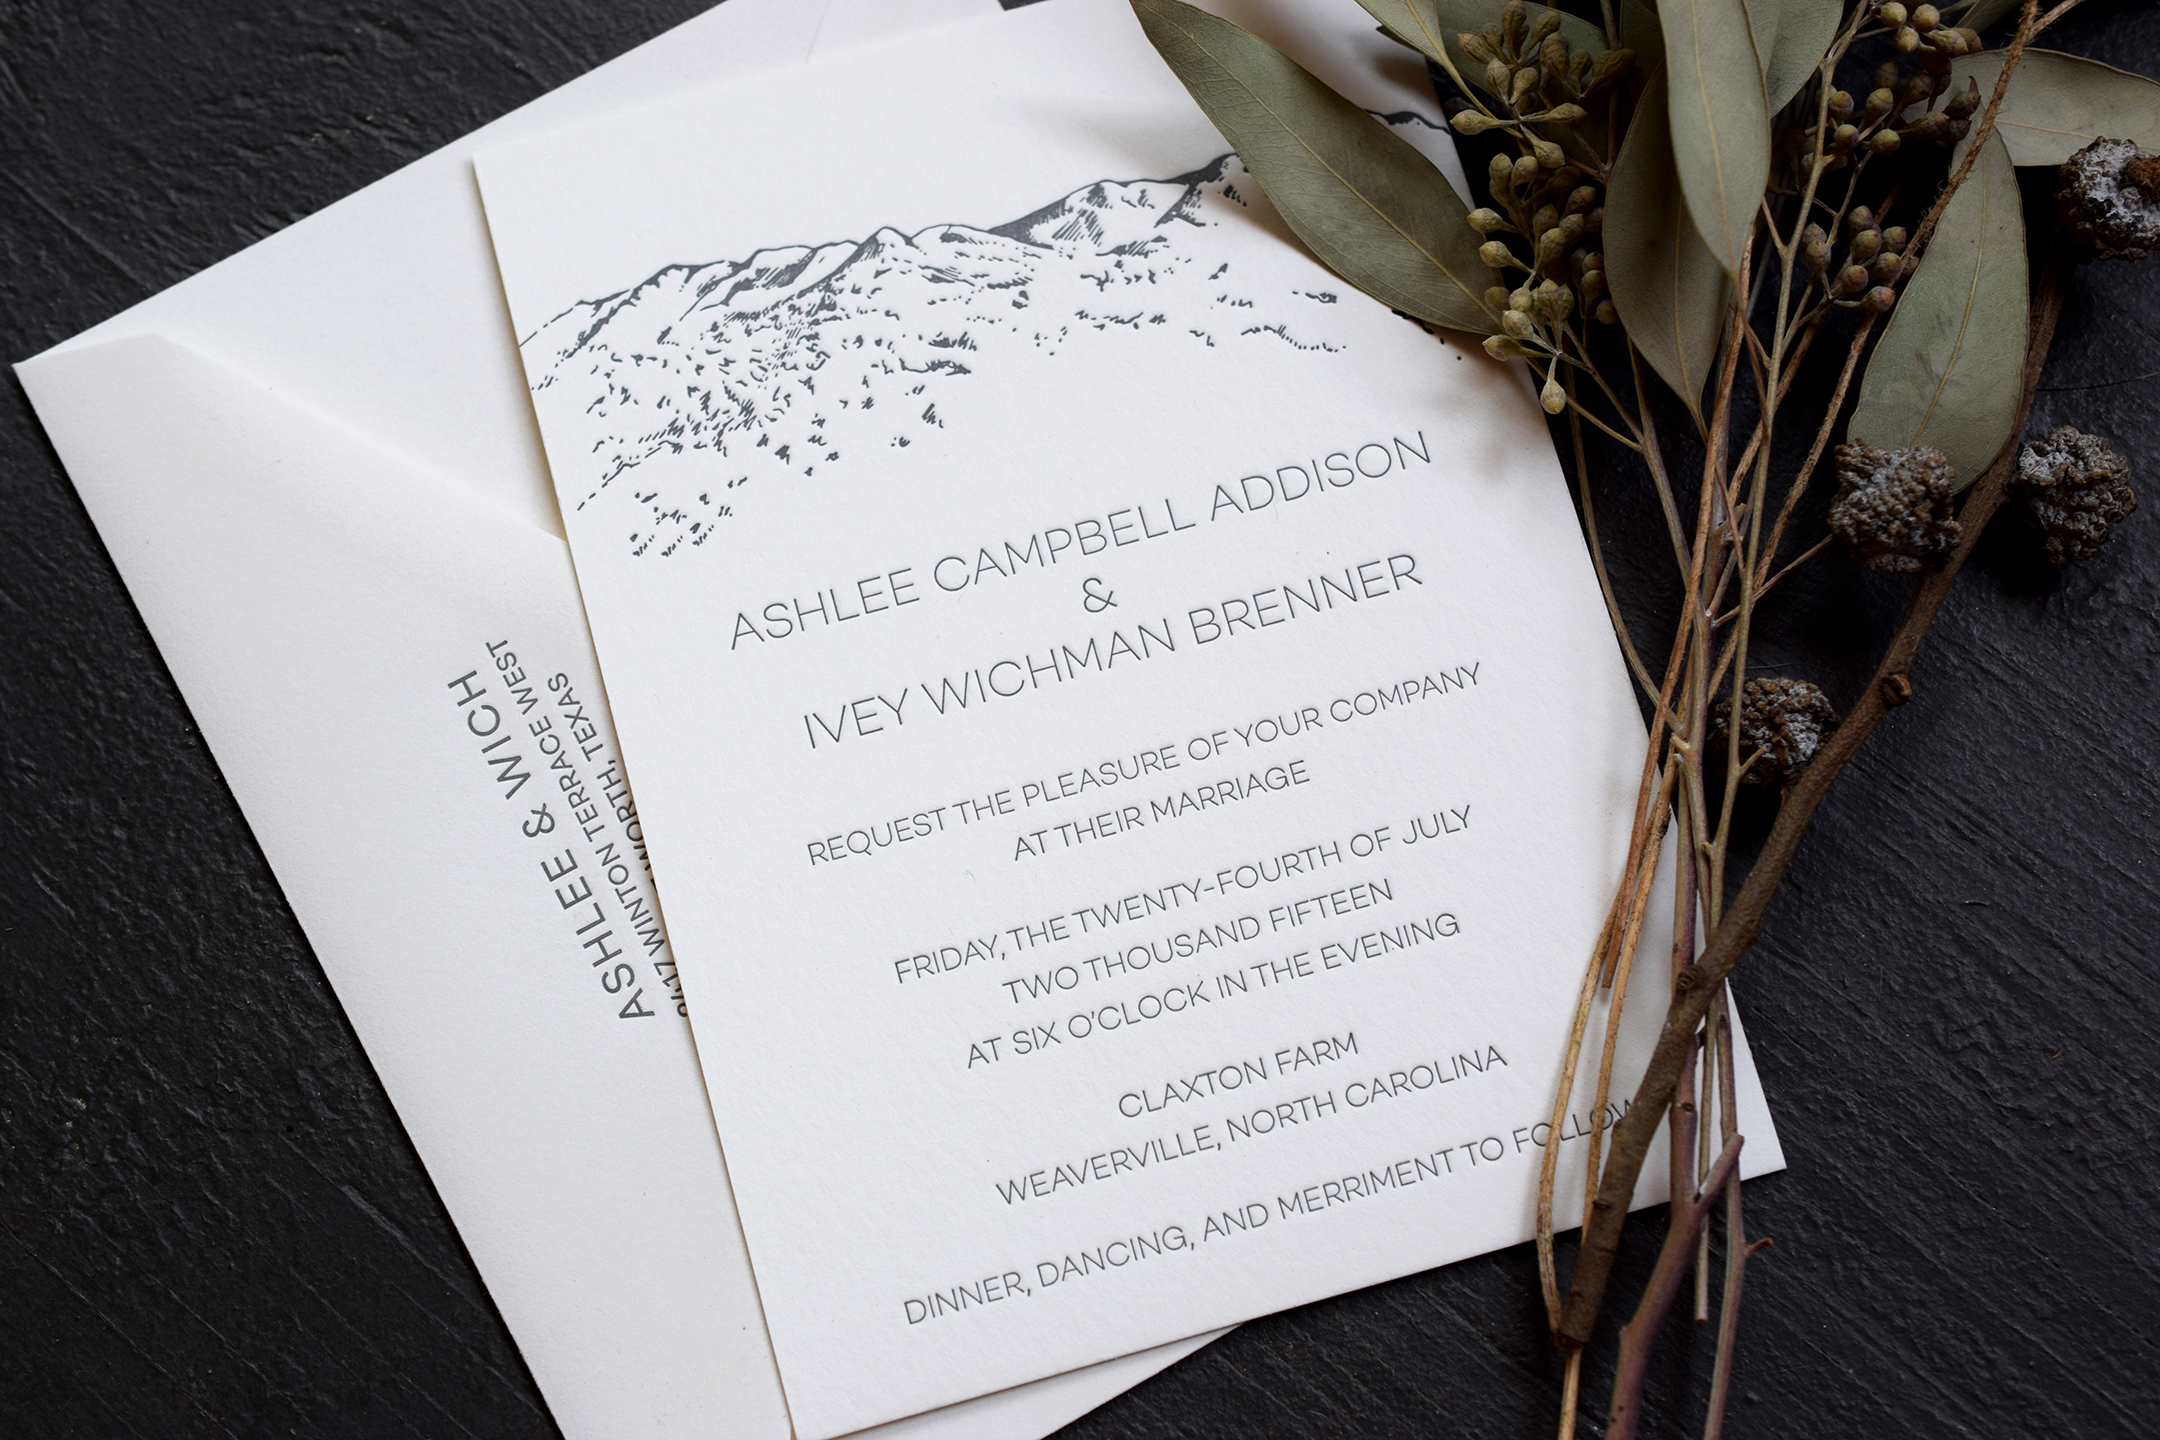 Ashlee & Wich: Letterpress Printed Wedding Invitation with custom mountain illustration.